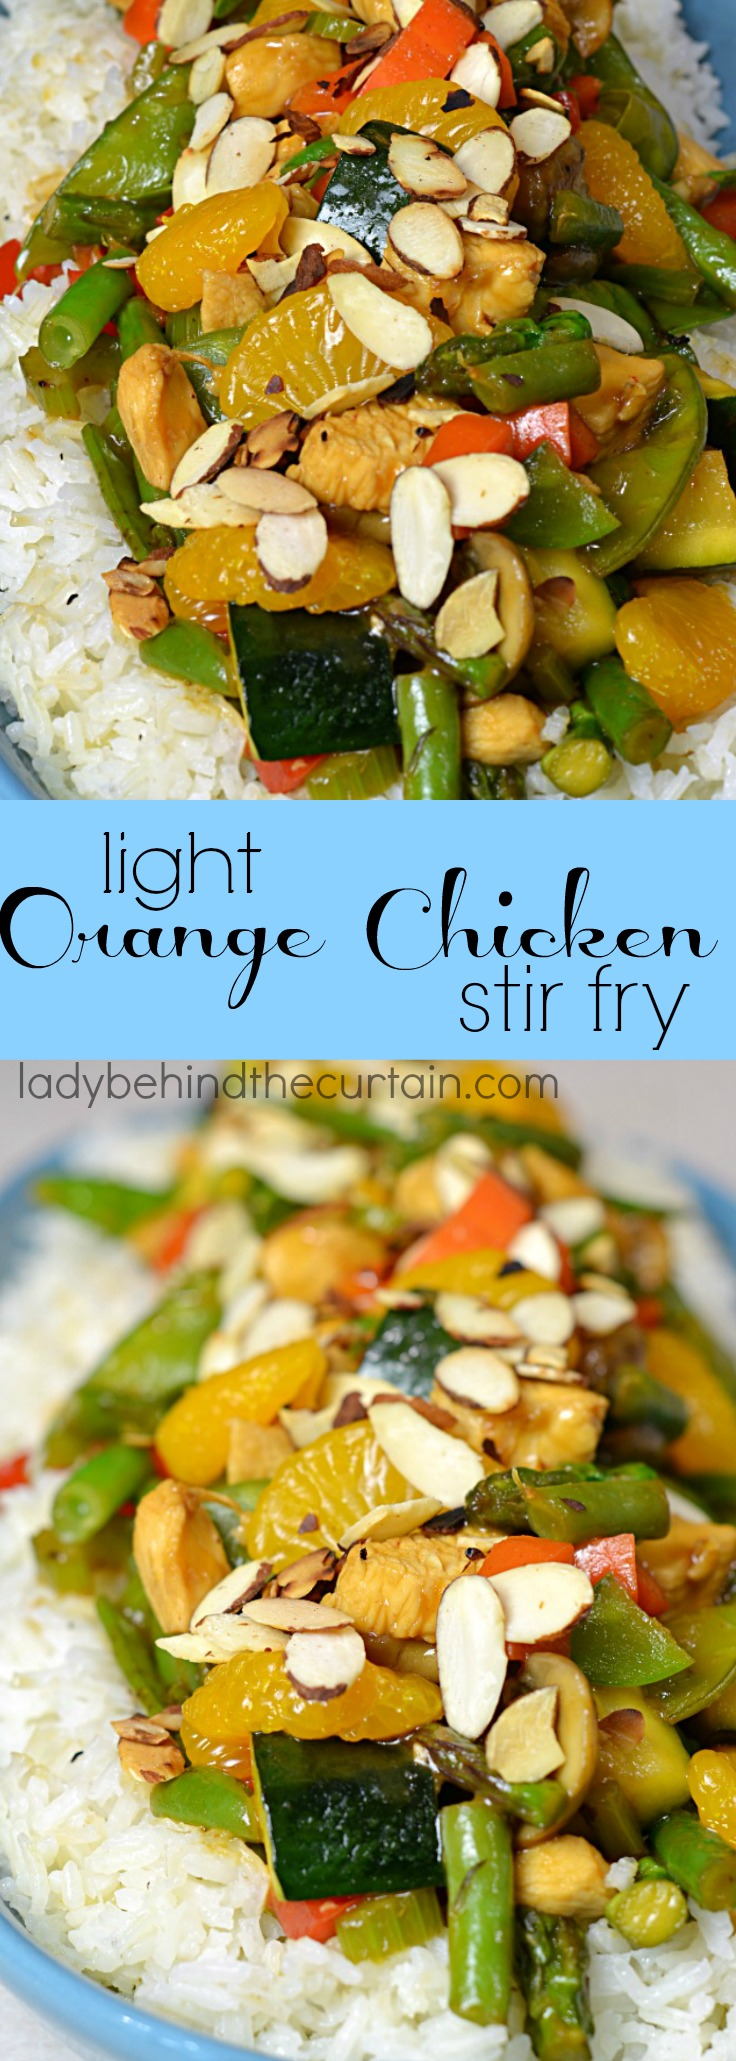 Light Orange Chicken Stir Fry | easy take out, chinese take out, light organe chicken recipe, take out at home